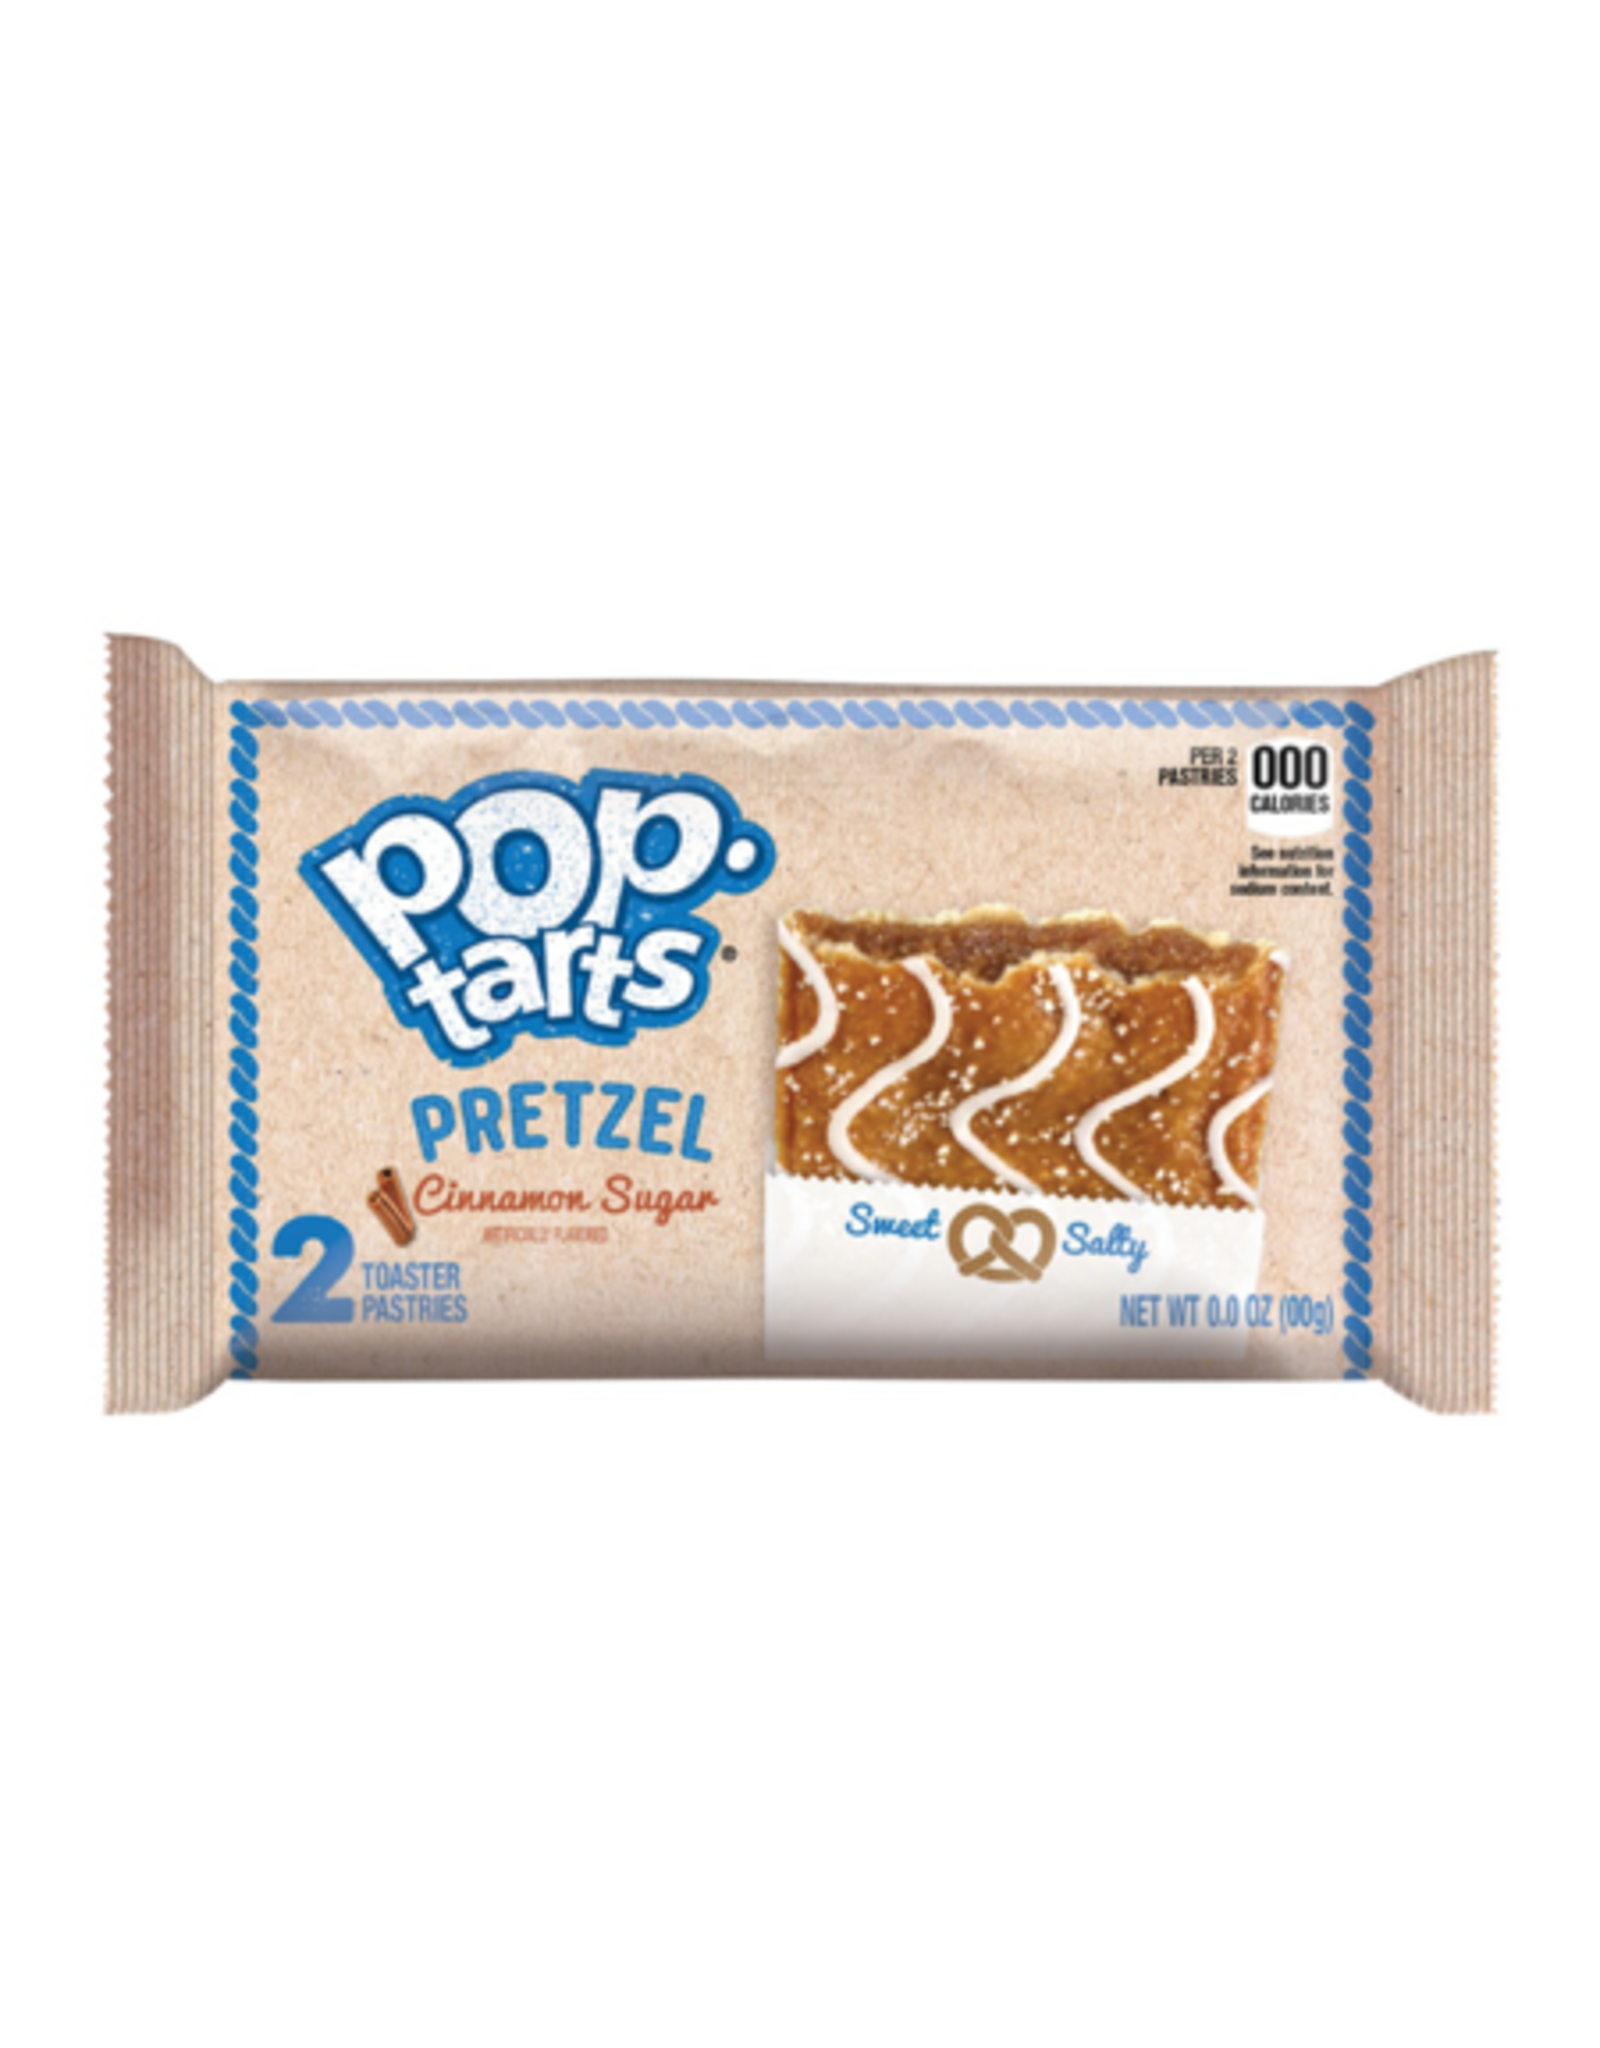 Pop-Tarts Pretzel Cinnamon Sugar - 2 Pack (96g)